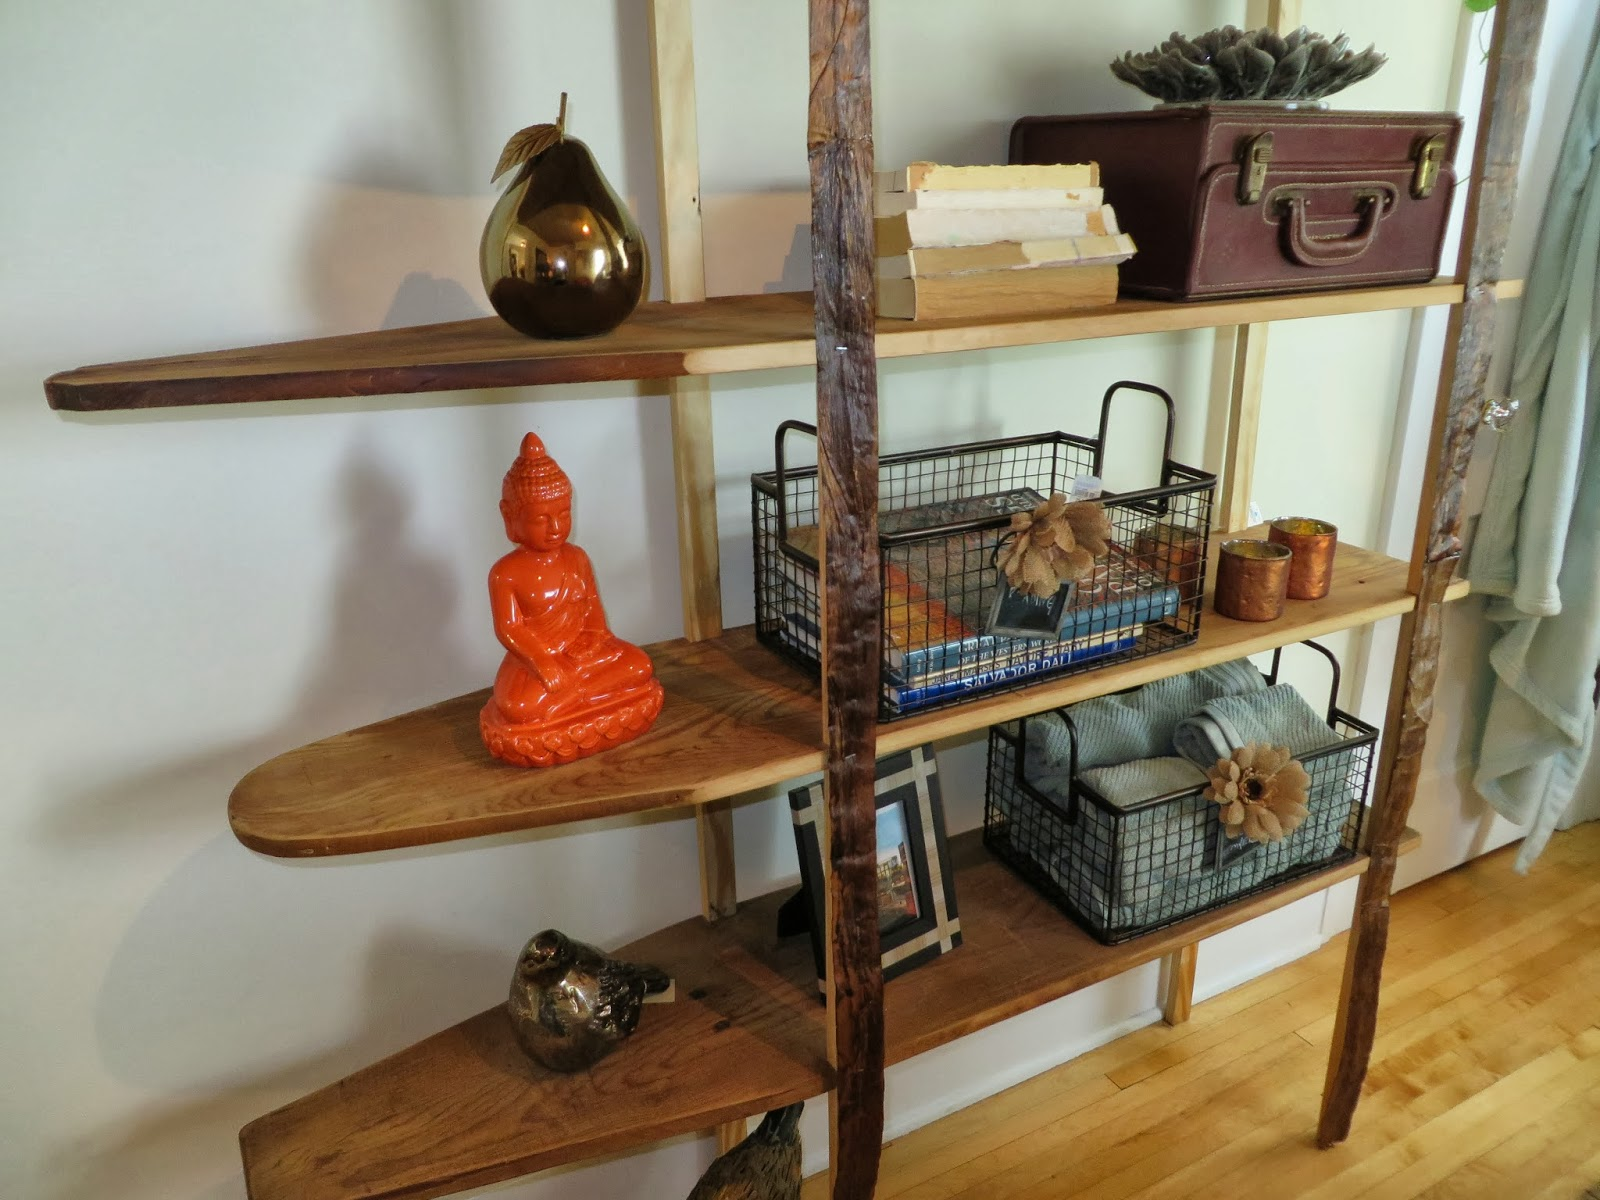 Wooden Ironing Boards Utilized as a Shelving Unit